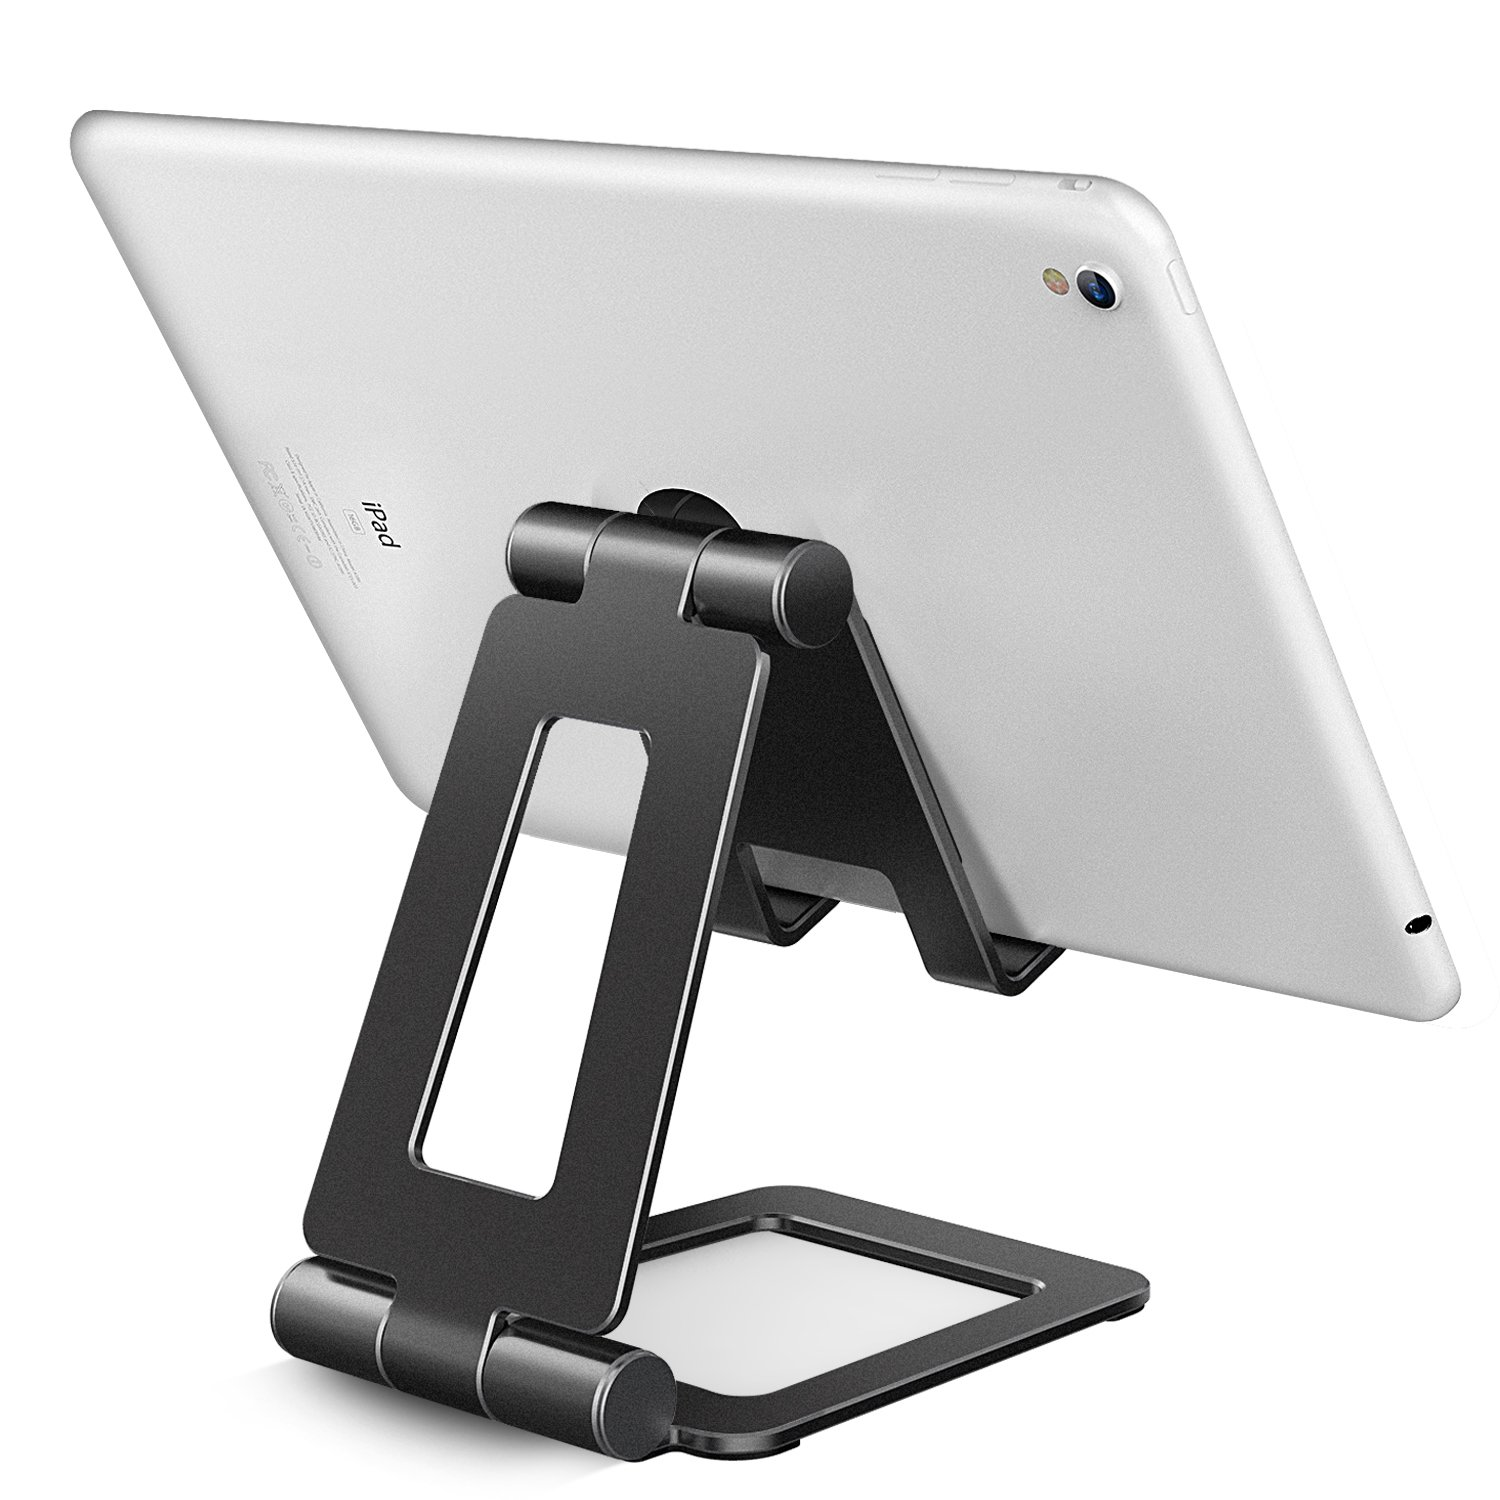 Adjustable iPad Stand, Tablet Stand Holders, Cell Phone Stands, iPhone Stand, Nintendo Switch Stand, iPad Pro Stand, iPad Mini Stands and Holders for Desk (4-13 inch) by Hi-Tech Wireless (Image #10)